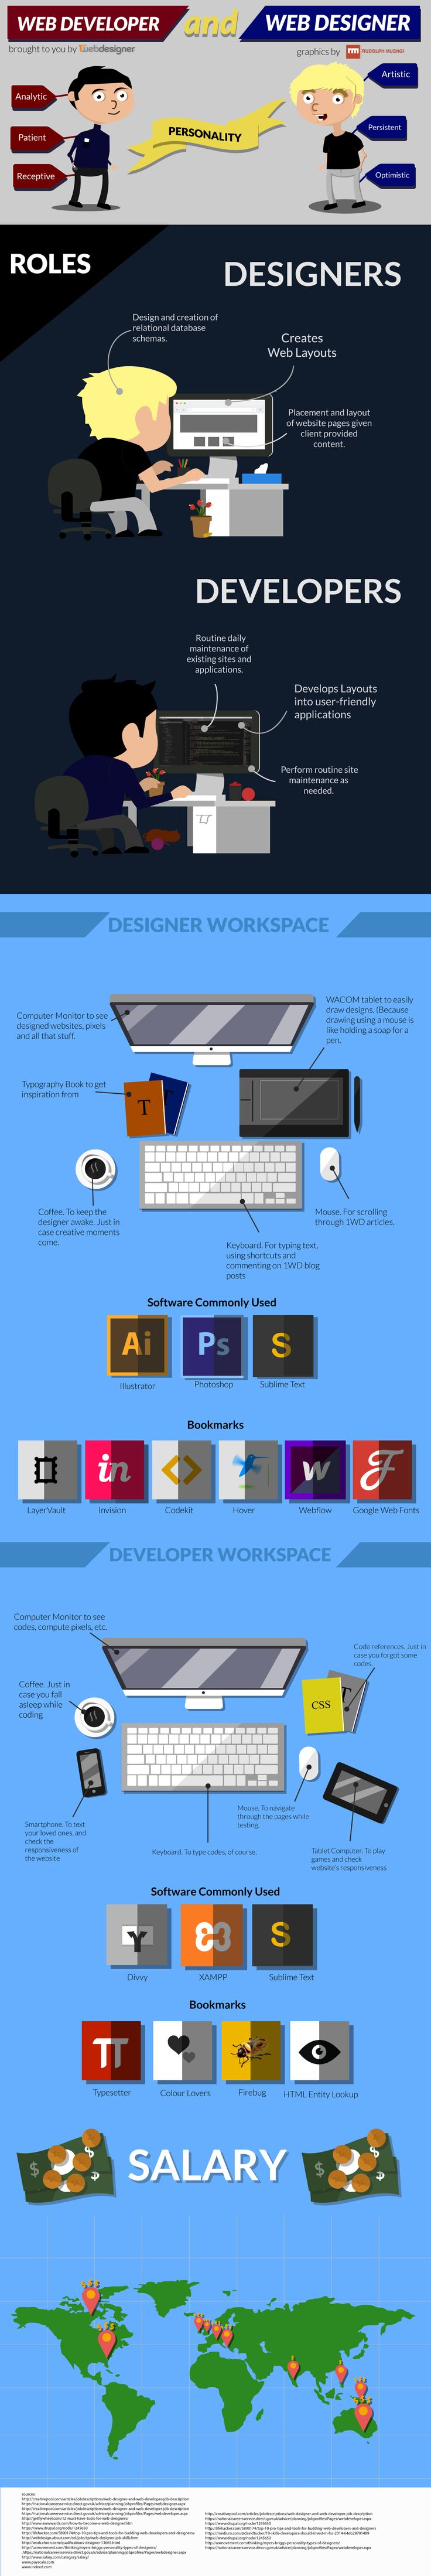 38 best webdesign images on pinterest graph design advertising whats the difference between web designers and web developers fandeluxe Choice Image